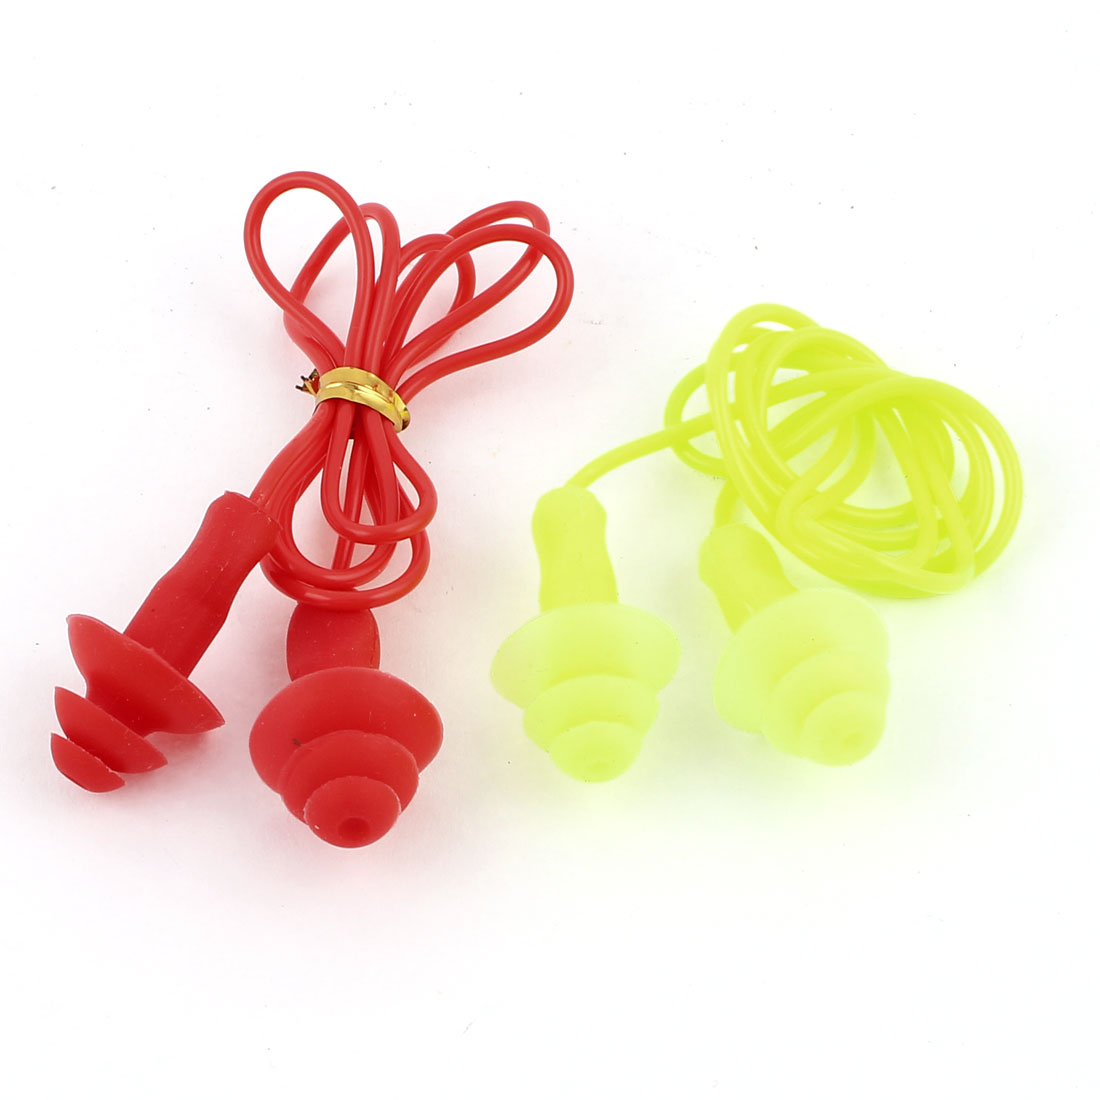 2 Pcs 52cm Long Swimming Sleeping Silicone Earplugs String Yellow Red